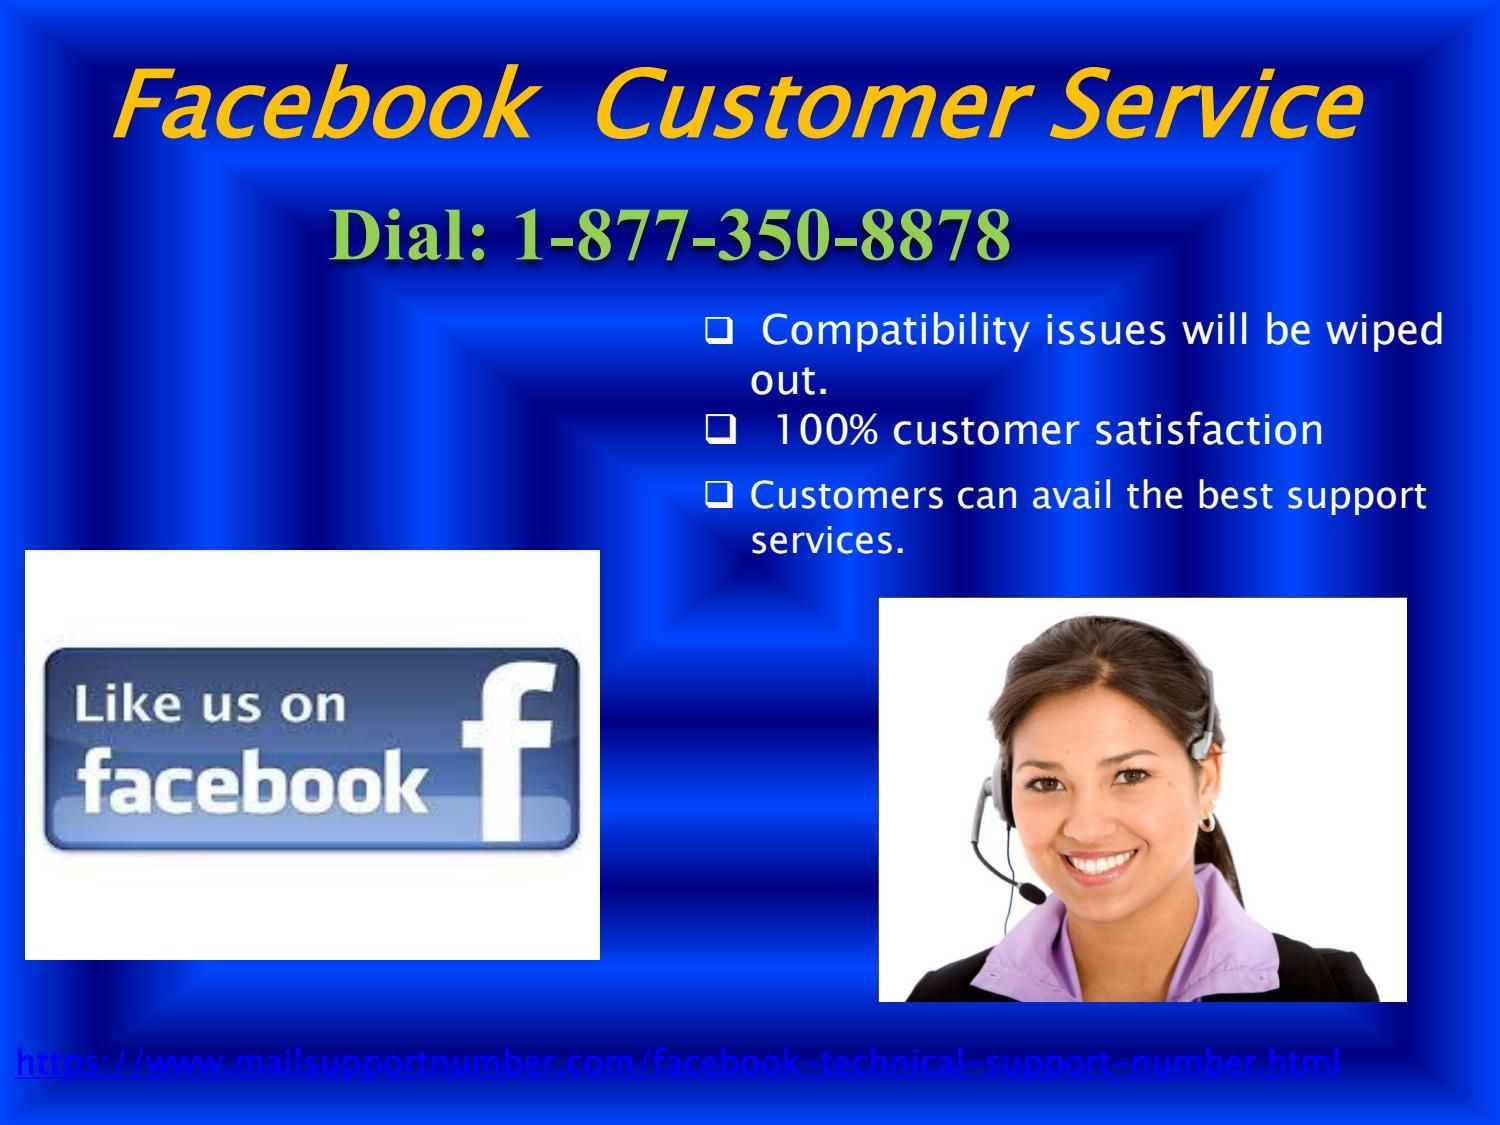 Avail Facebook Customer Service 18773508878 to develop